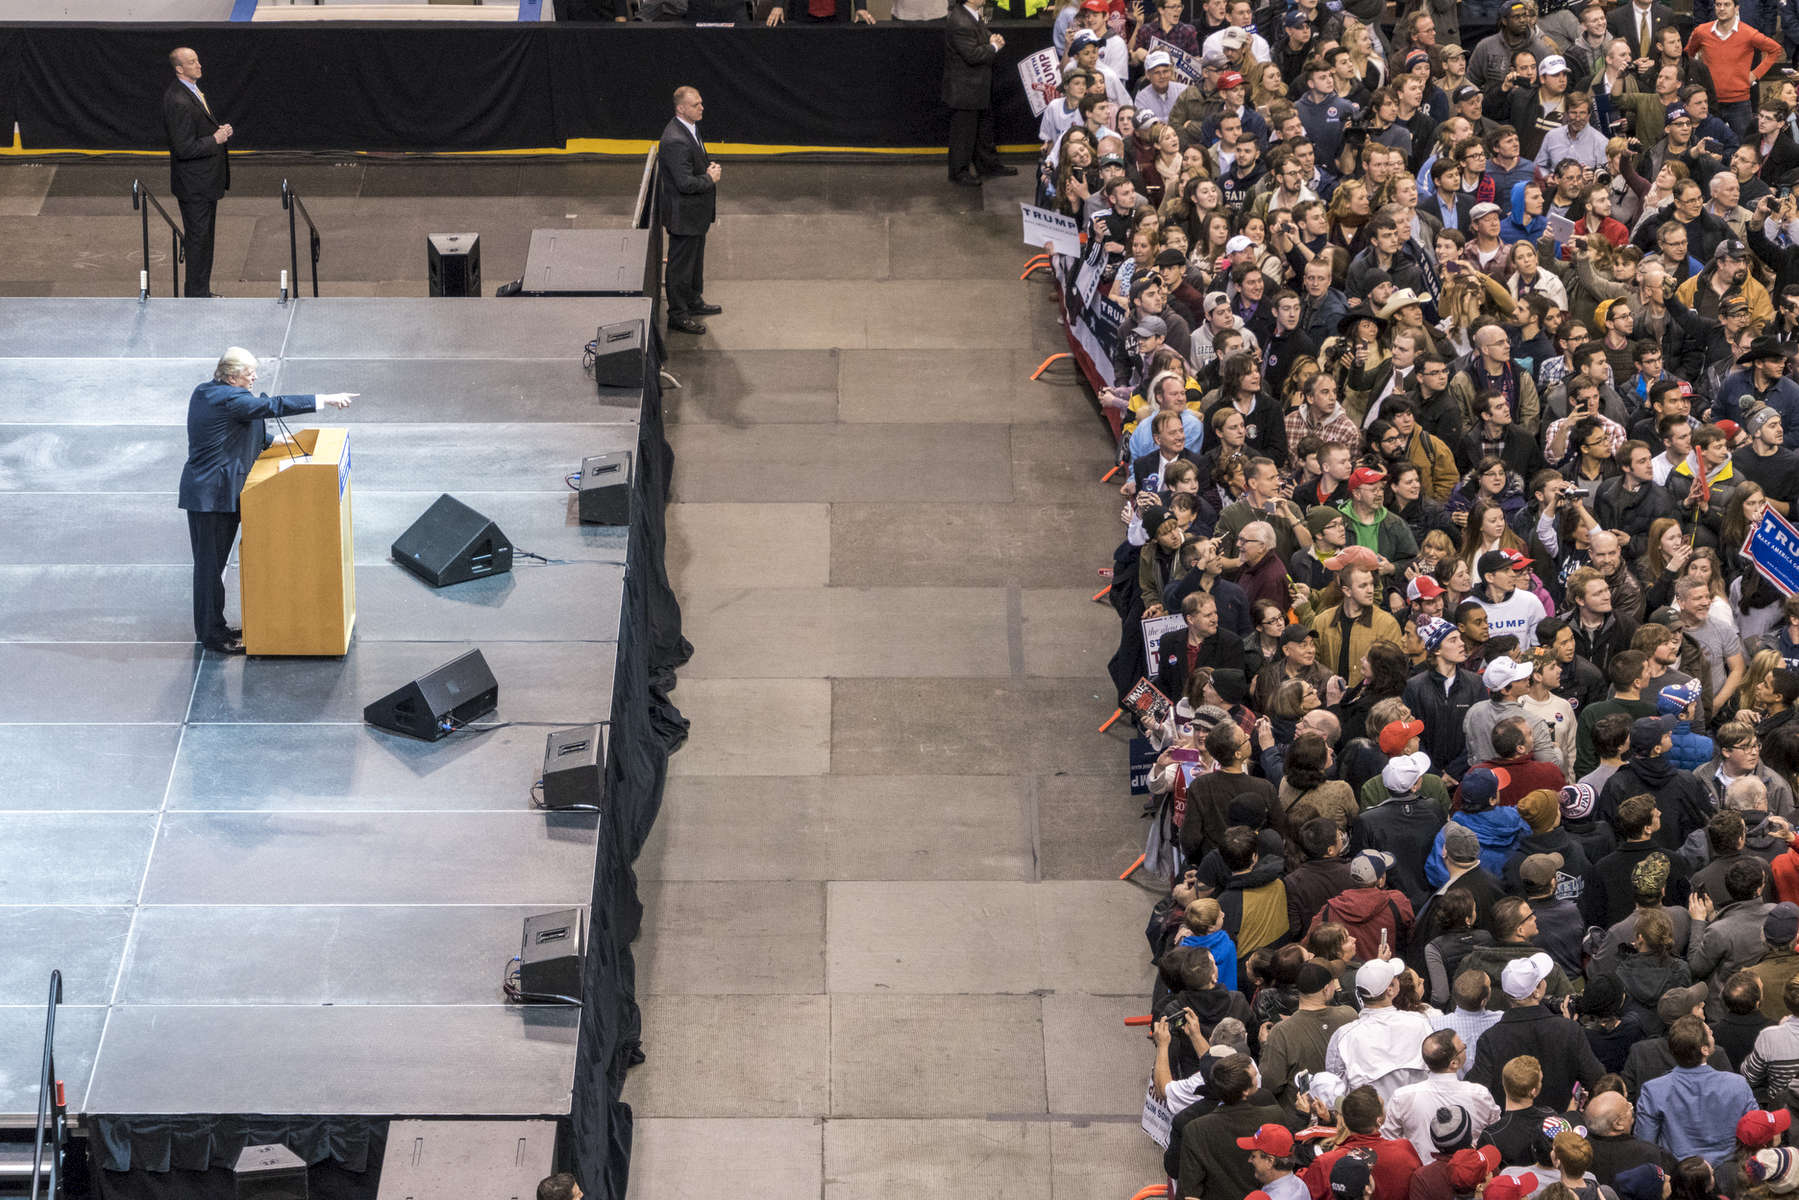 2016.  Manchester, NH.  USA.  Donald Trump addresses the crowd at a rally at Verizon Center on the eve of the primary. Donald Trump ultimately won the Republican primary and Bernie Sanders won the Democratic.